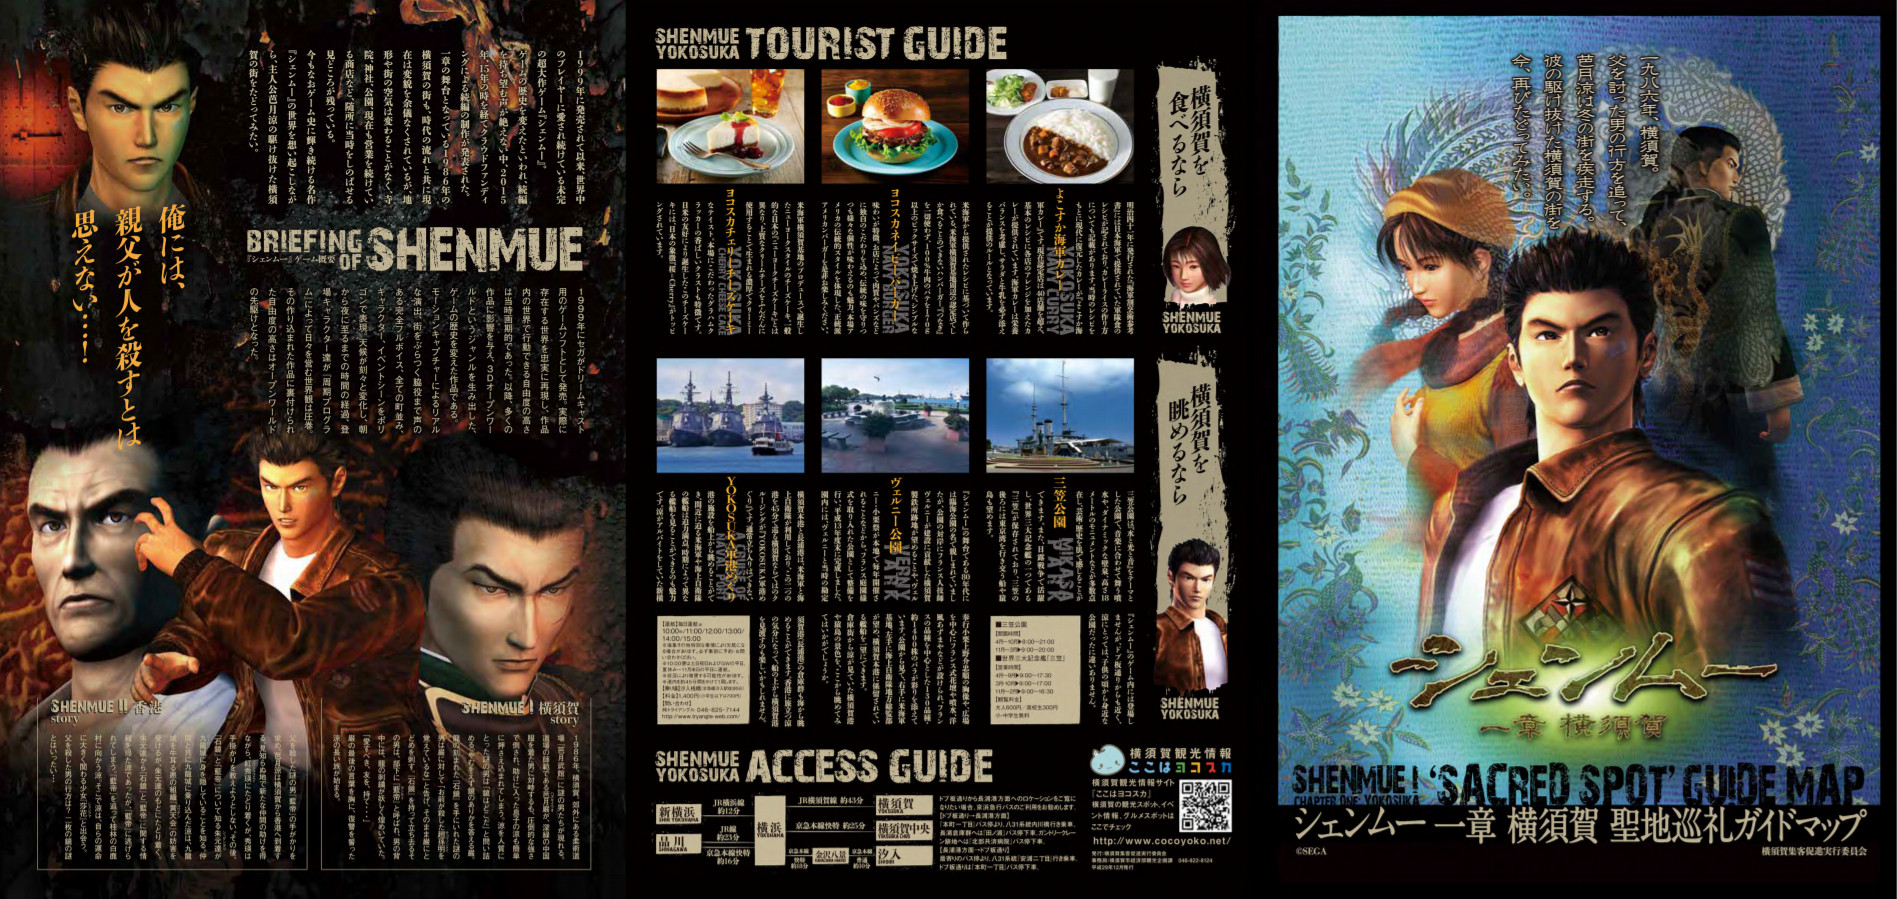 Shenmue Sacred Spot Guide Map